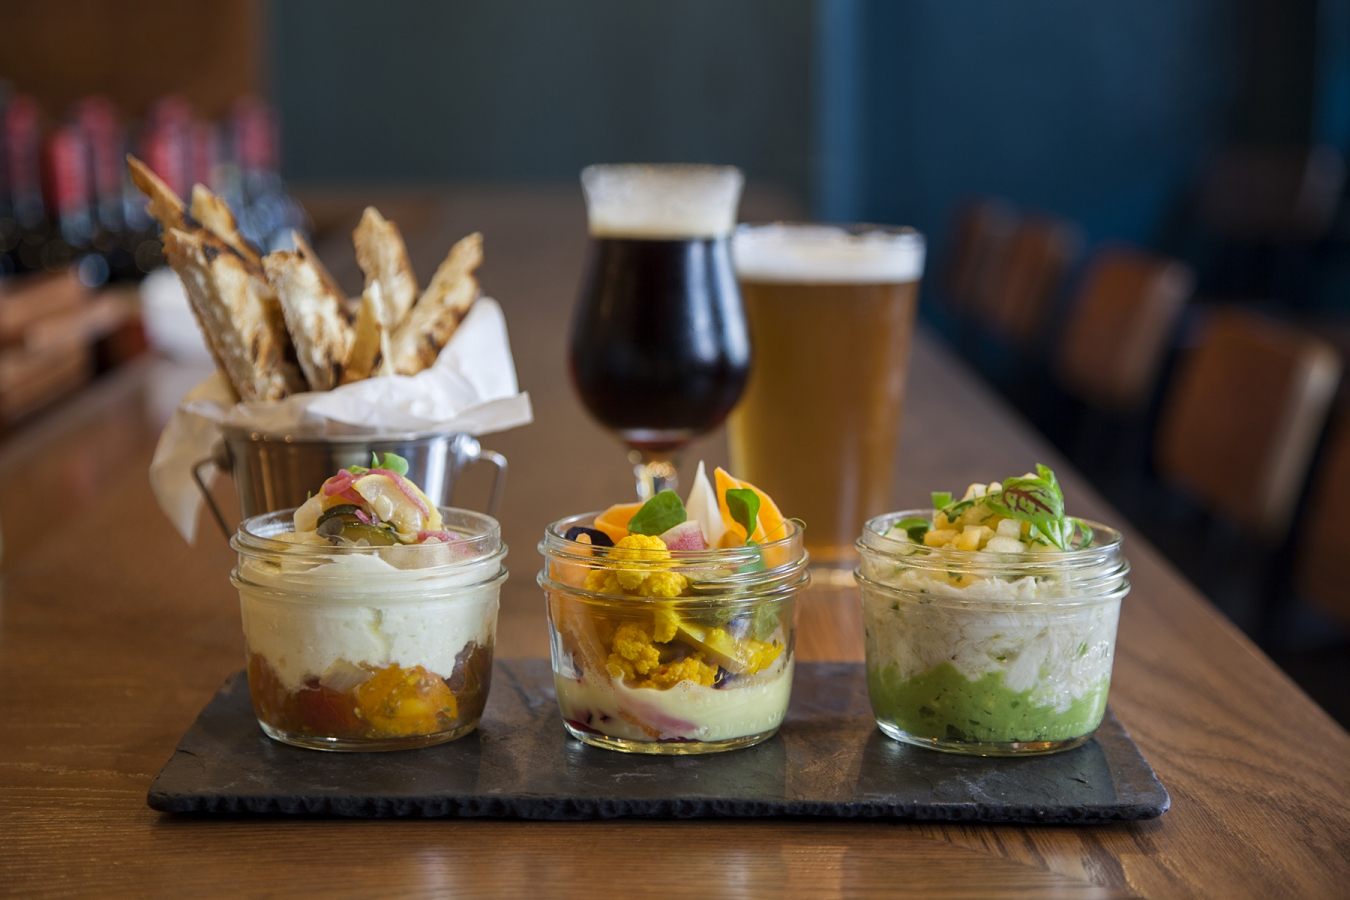 Hummus trio, fried Epic Pickles and craft beer